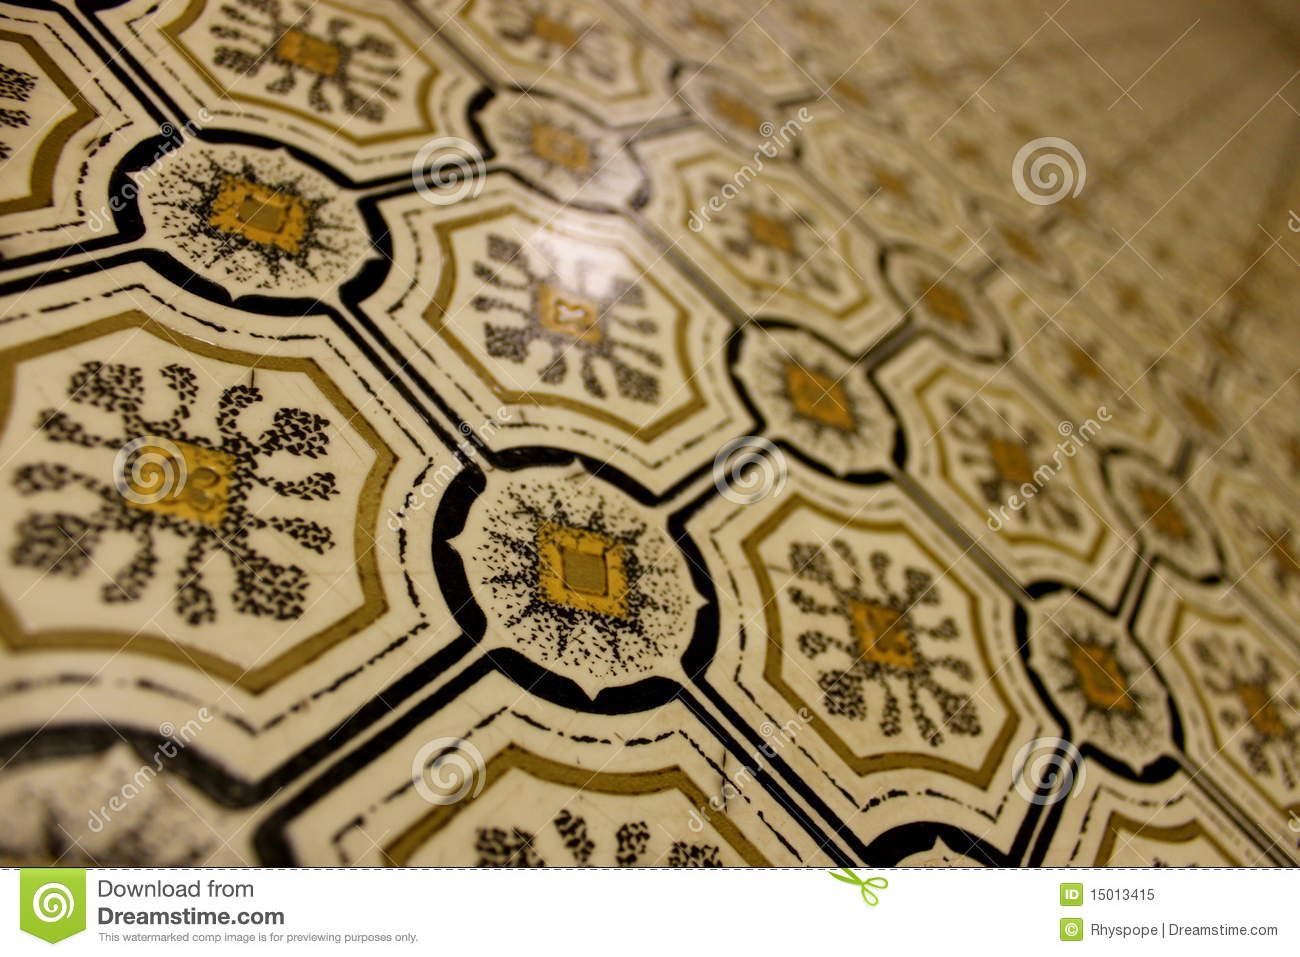 Patterns In Lino Royalty Free Stock Photo Image 15013415